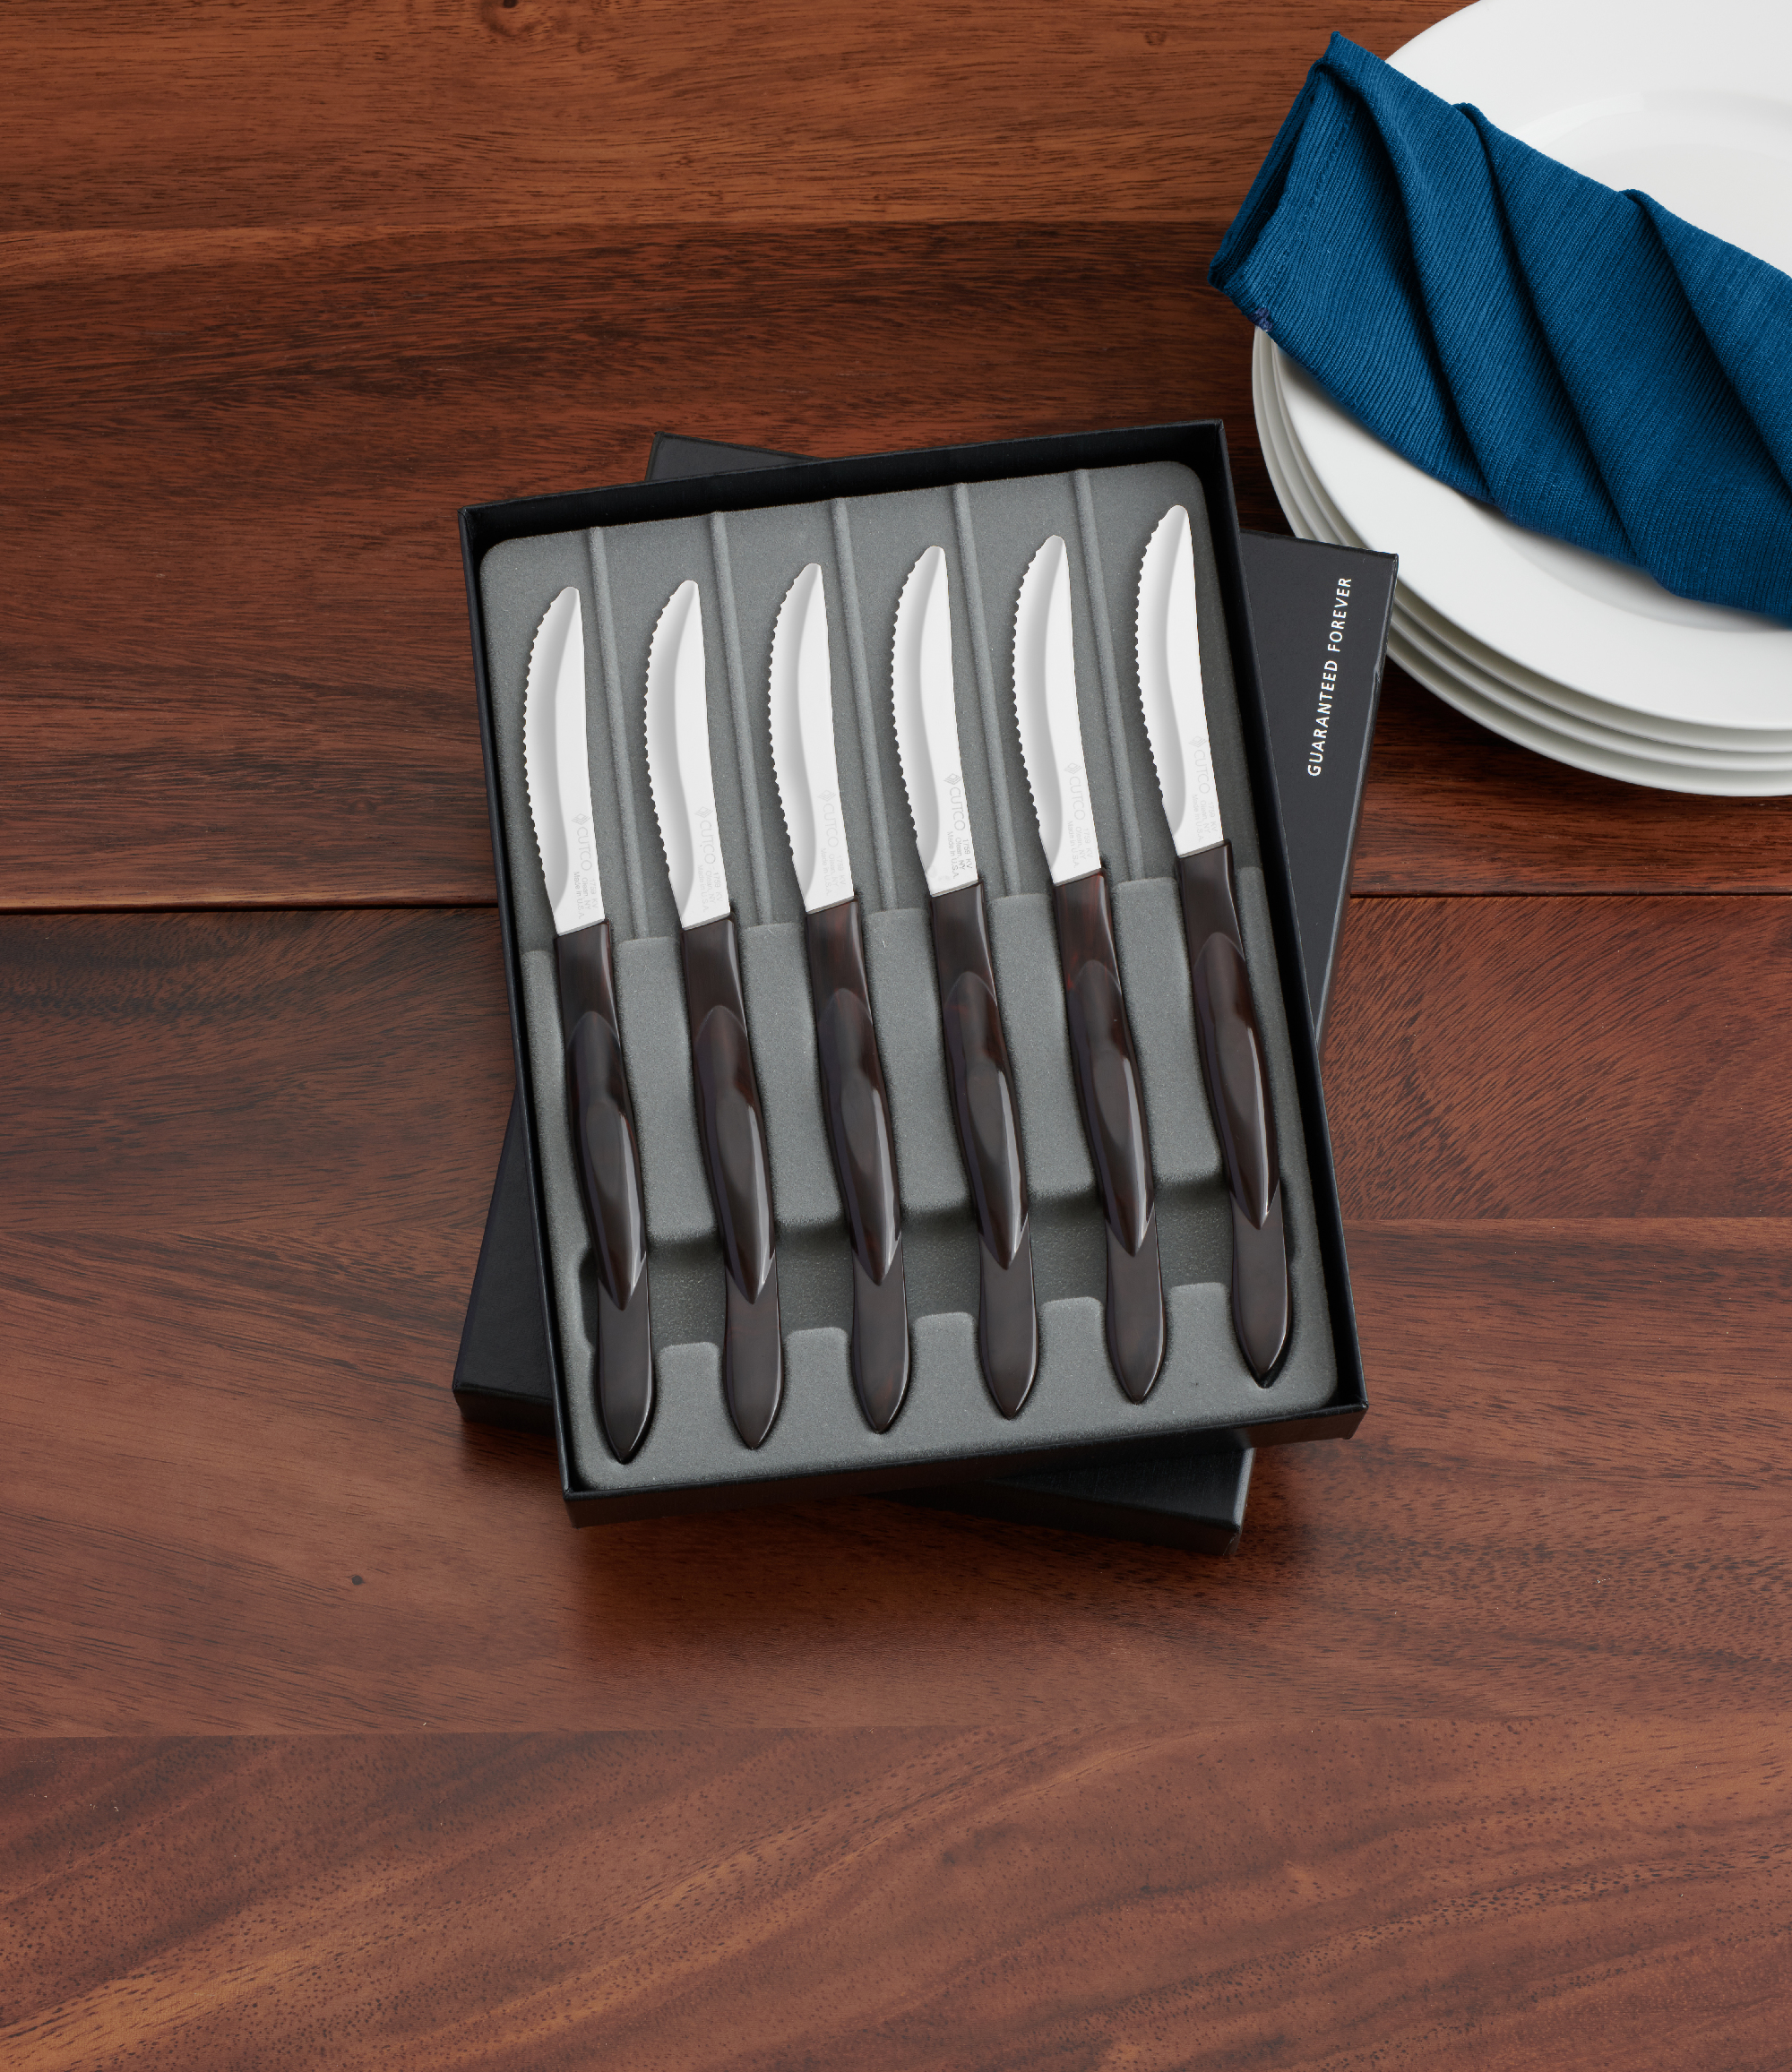 6 Pc. Table Knife Set In Gift Box